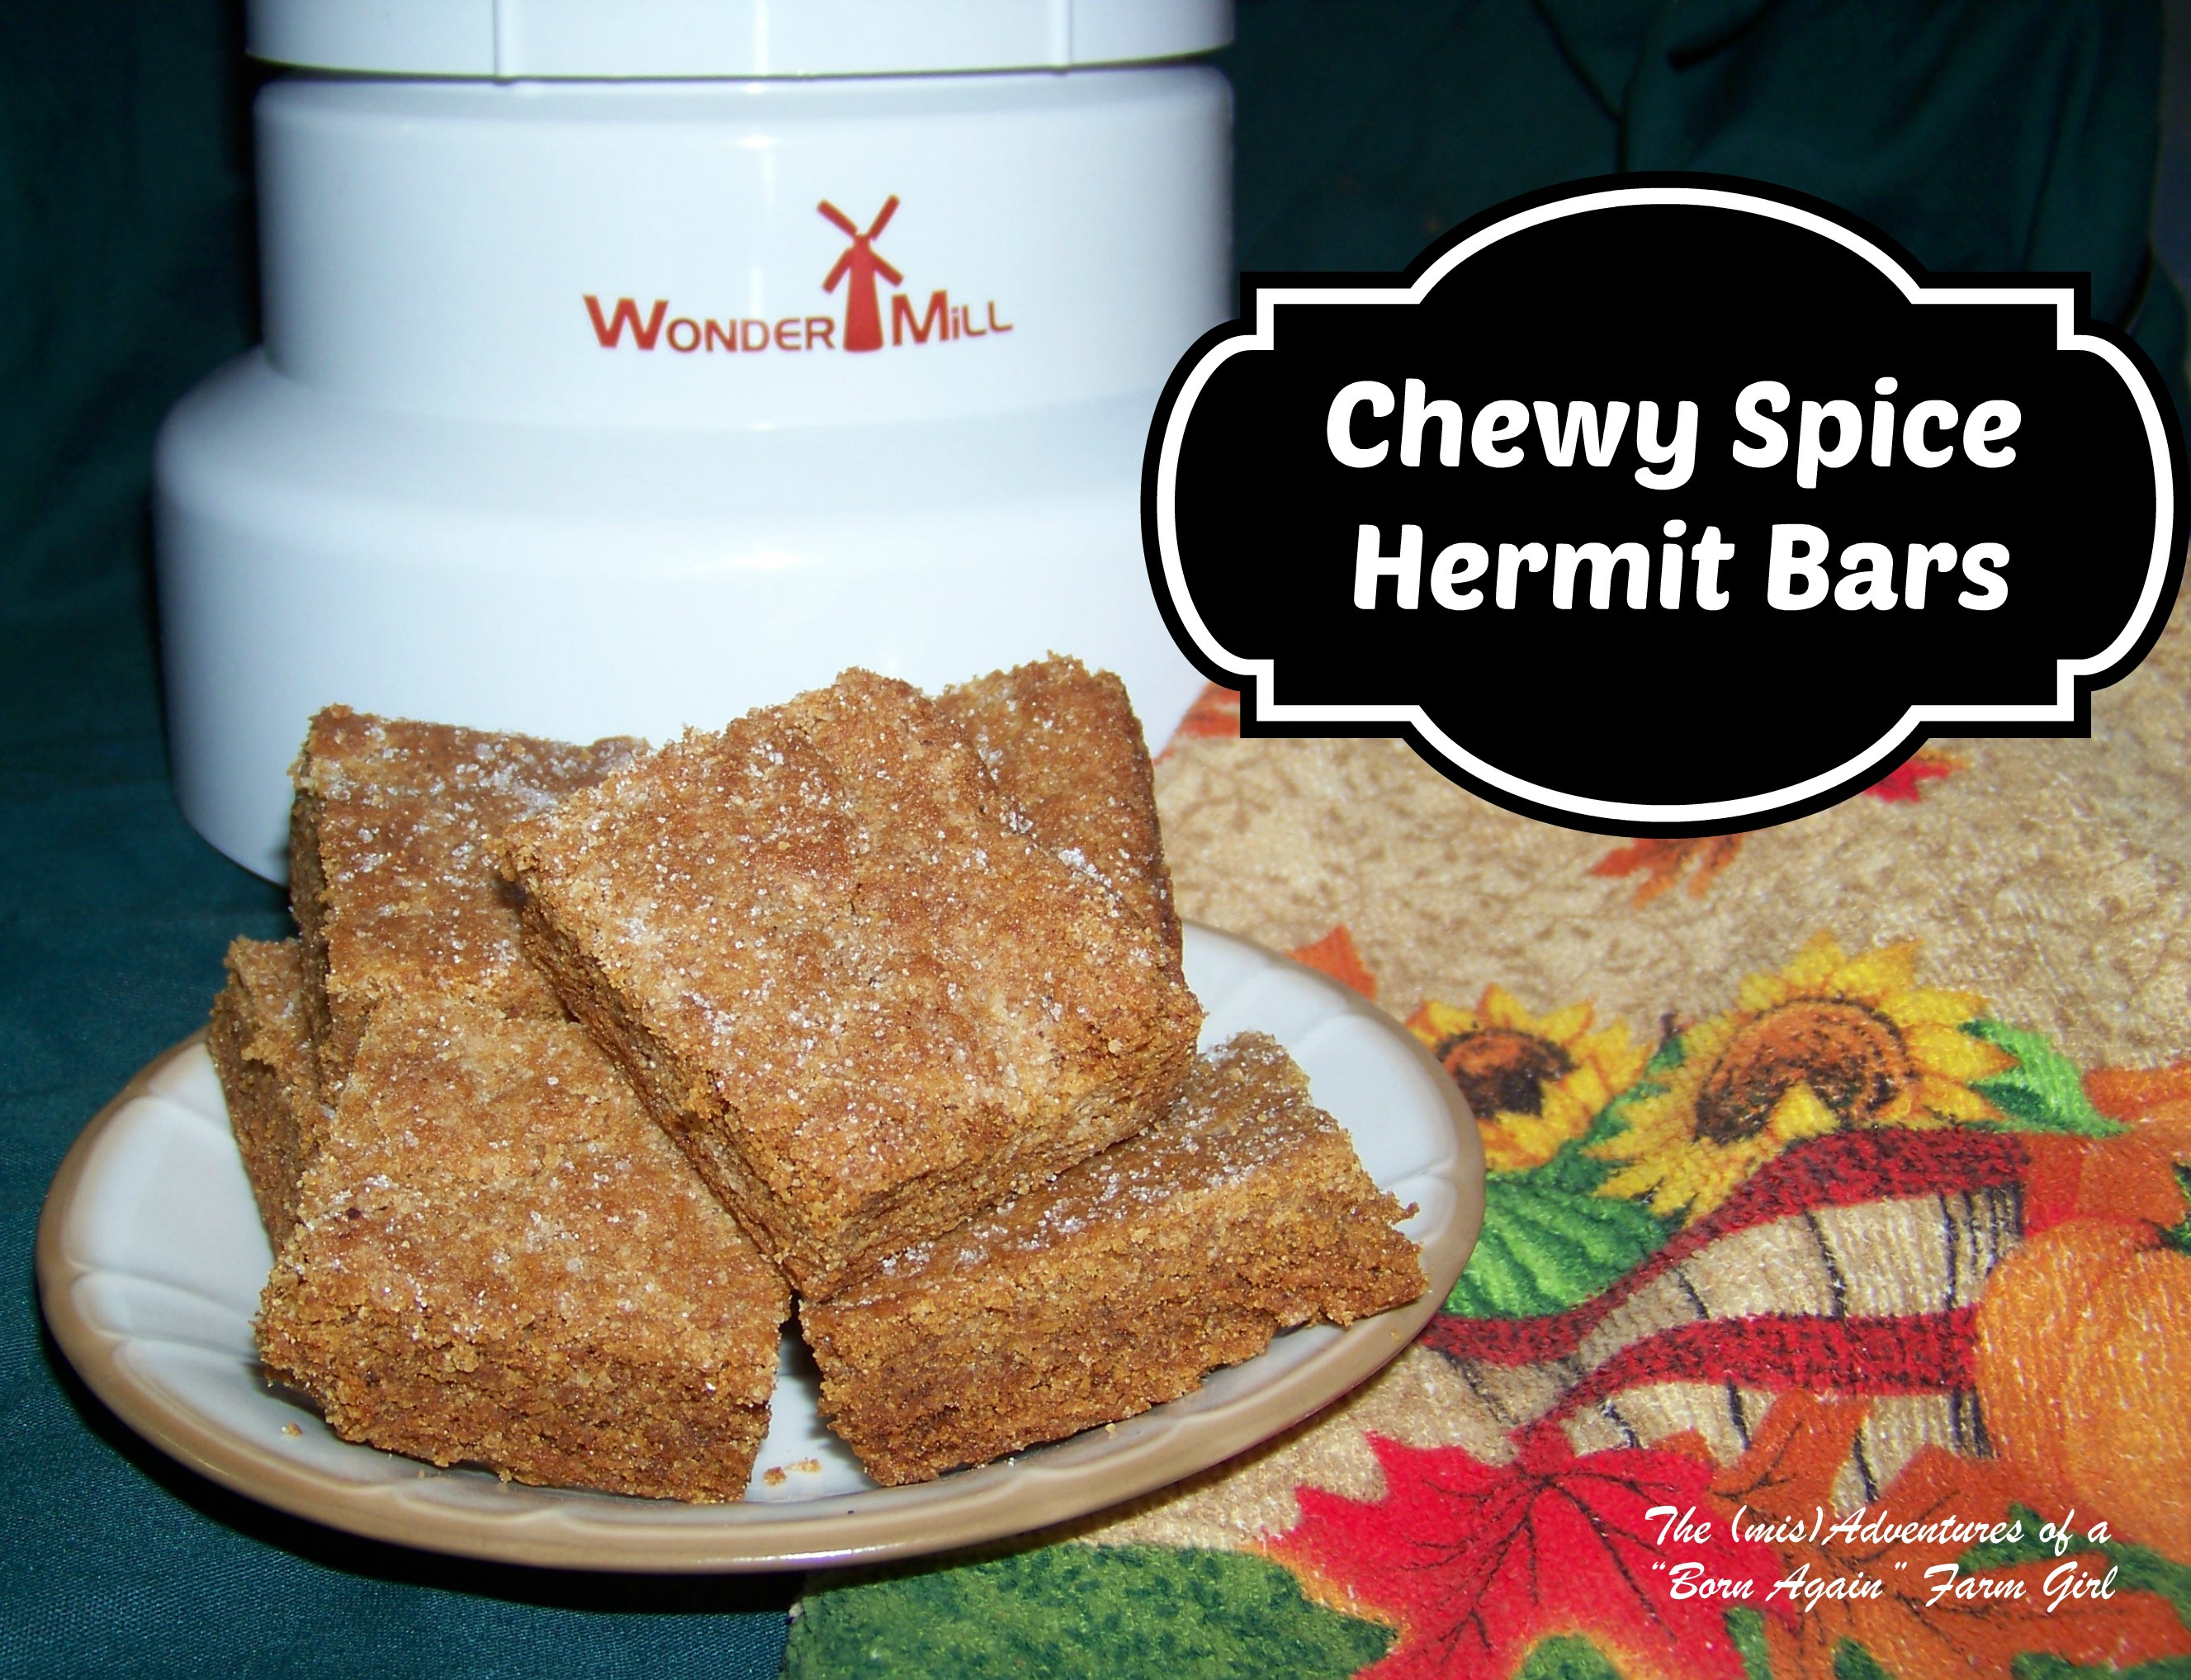 Chewy Spice Hermit Bars